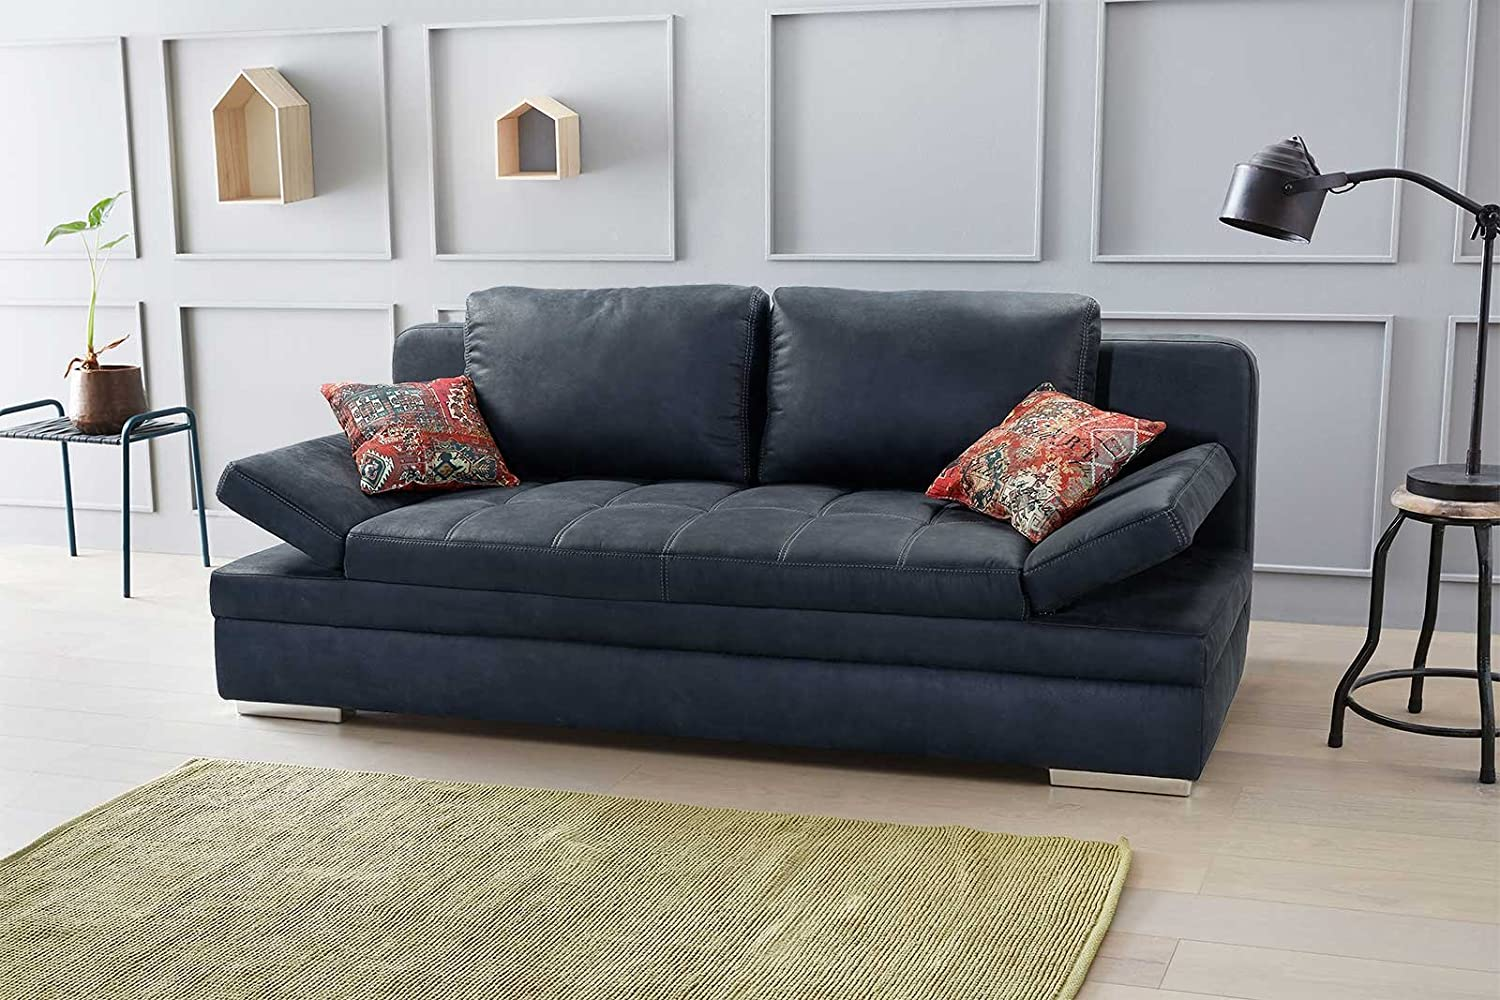 ausziehbare couch mit bettkasten interesting schlafsofa laura with ausziehbare couch mit. Black Bedroom Furniture Sets. Home Design Ideas